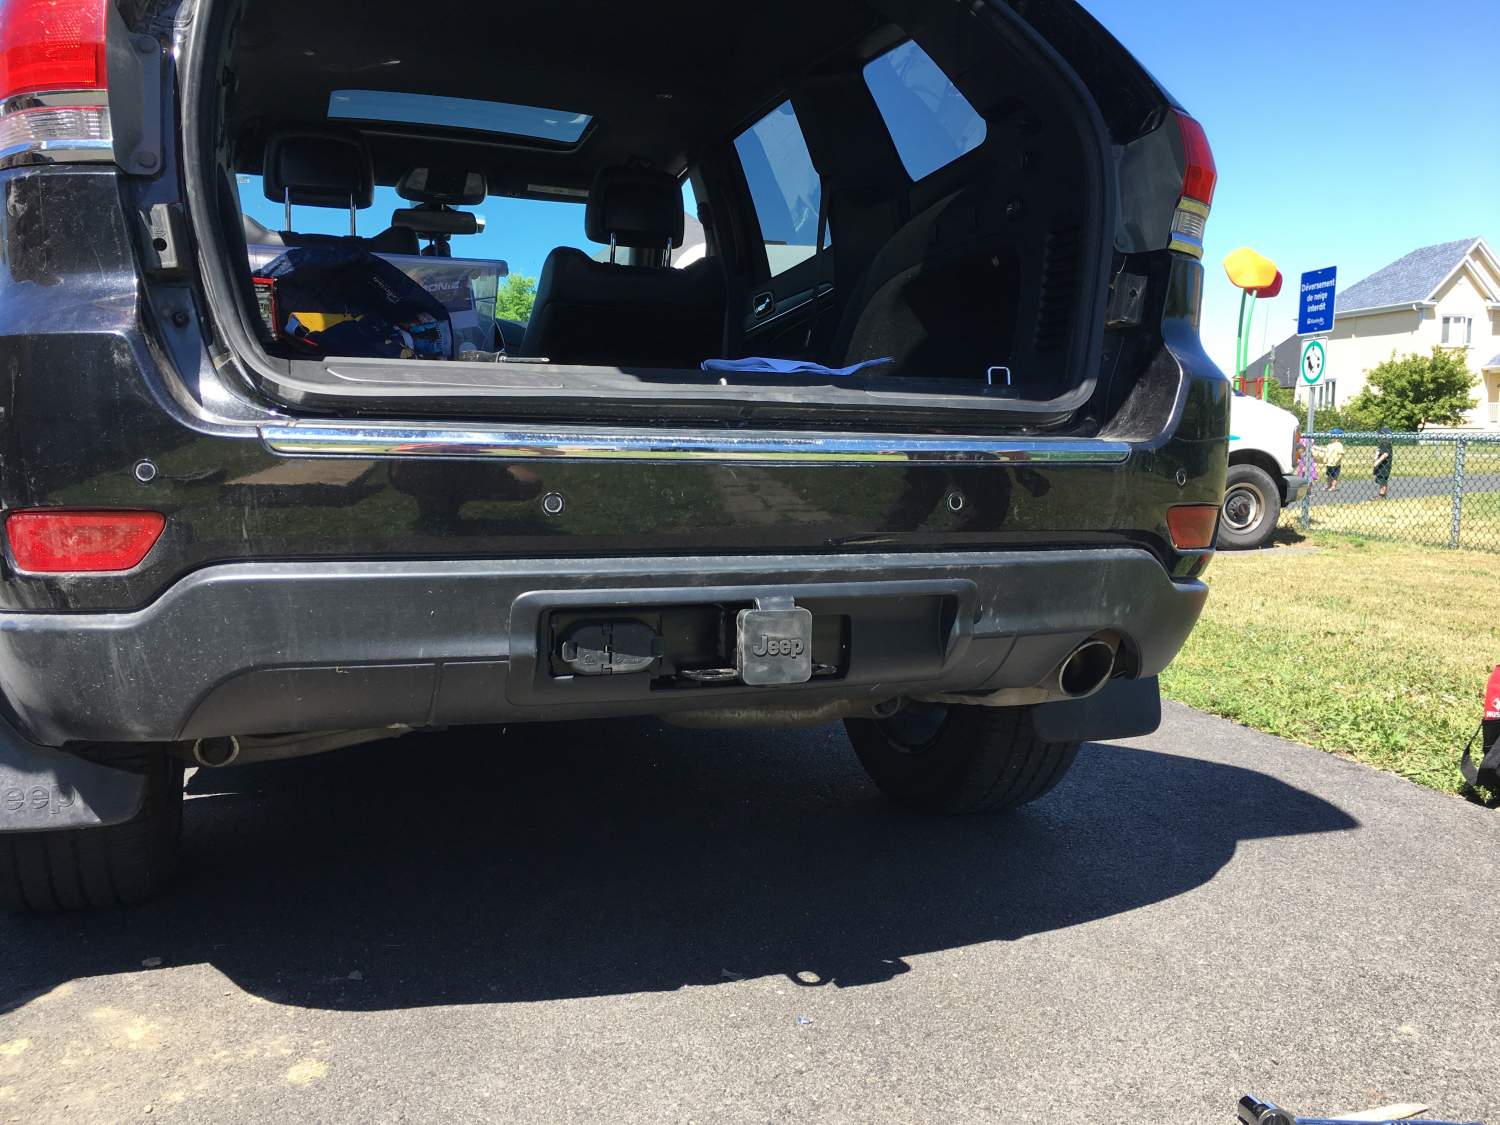 Jeep Grand Cherokee Hitch Receiver For 2011 2017 2014 Patriot Trailer Wiring With The Help Of 2 Peoples We Need Two Hours To Install Manual Is Very Helpful Thank You